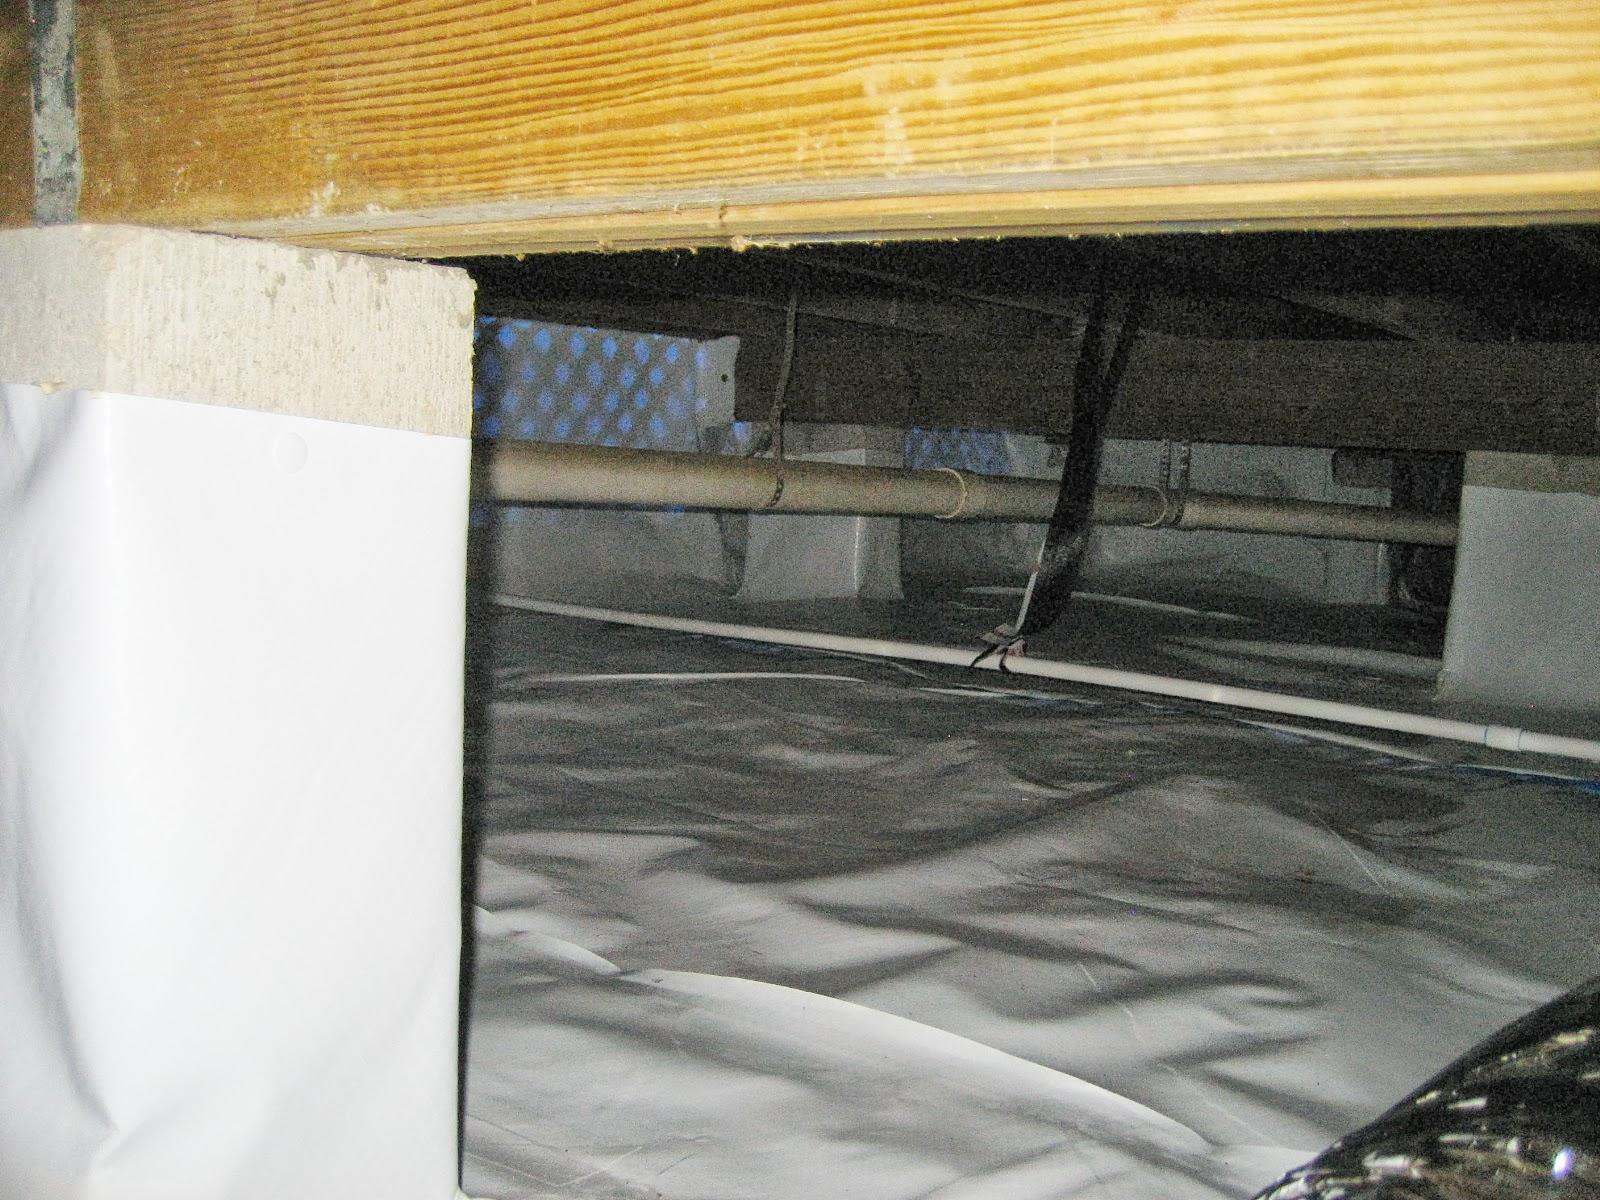 Moldy Crawl Space Repaired in Tallahassee, FL - After Photo